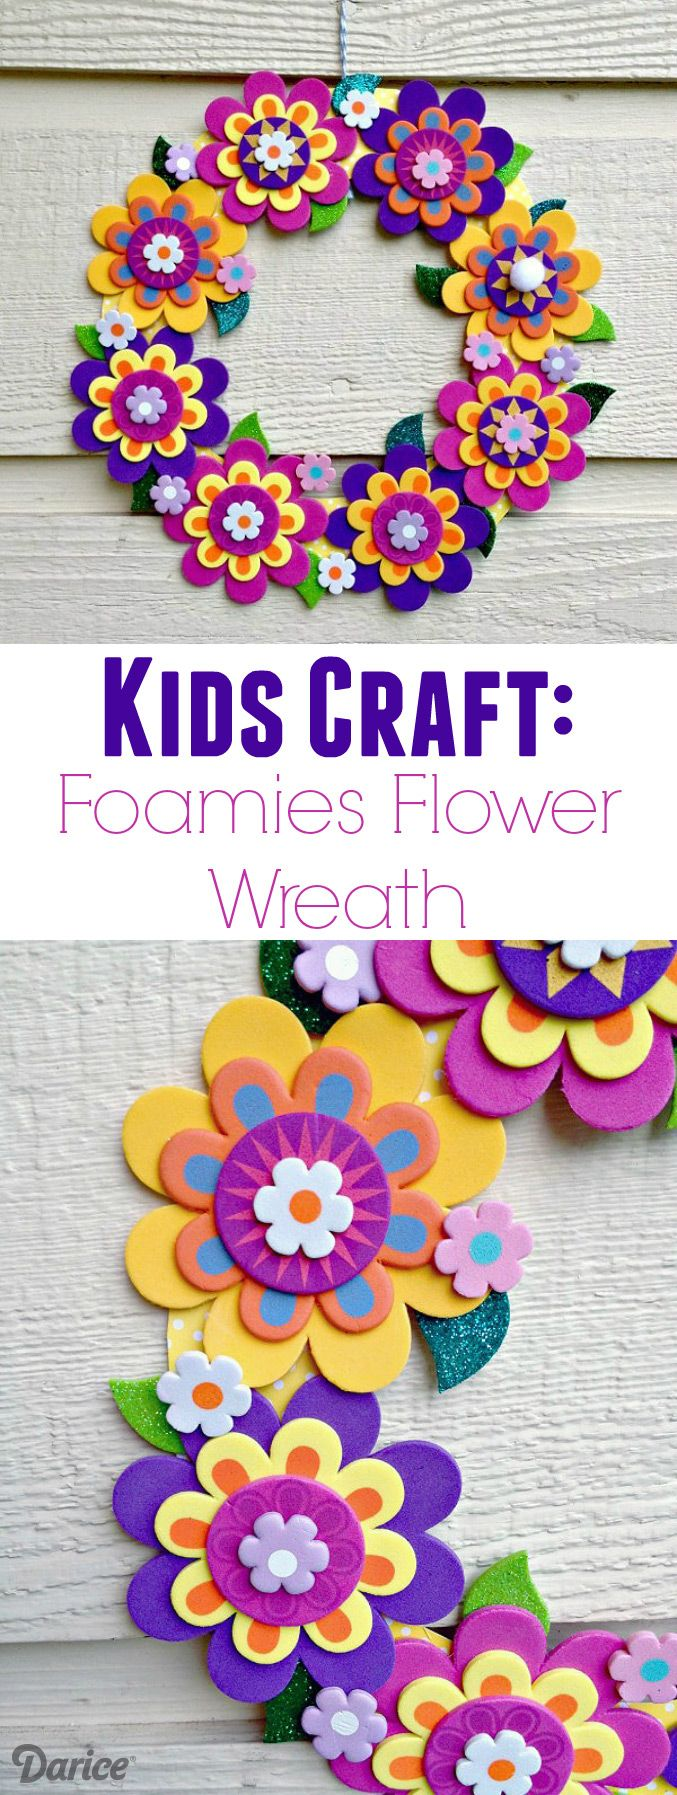 Kids Craft Idea: Foamies Flower Wreath - Darice